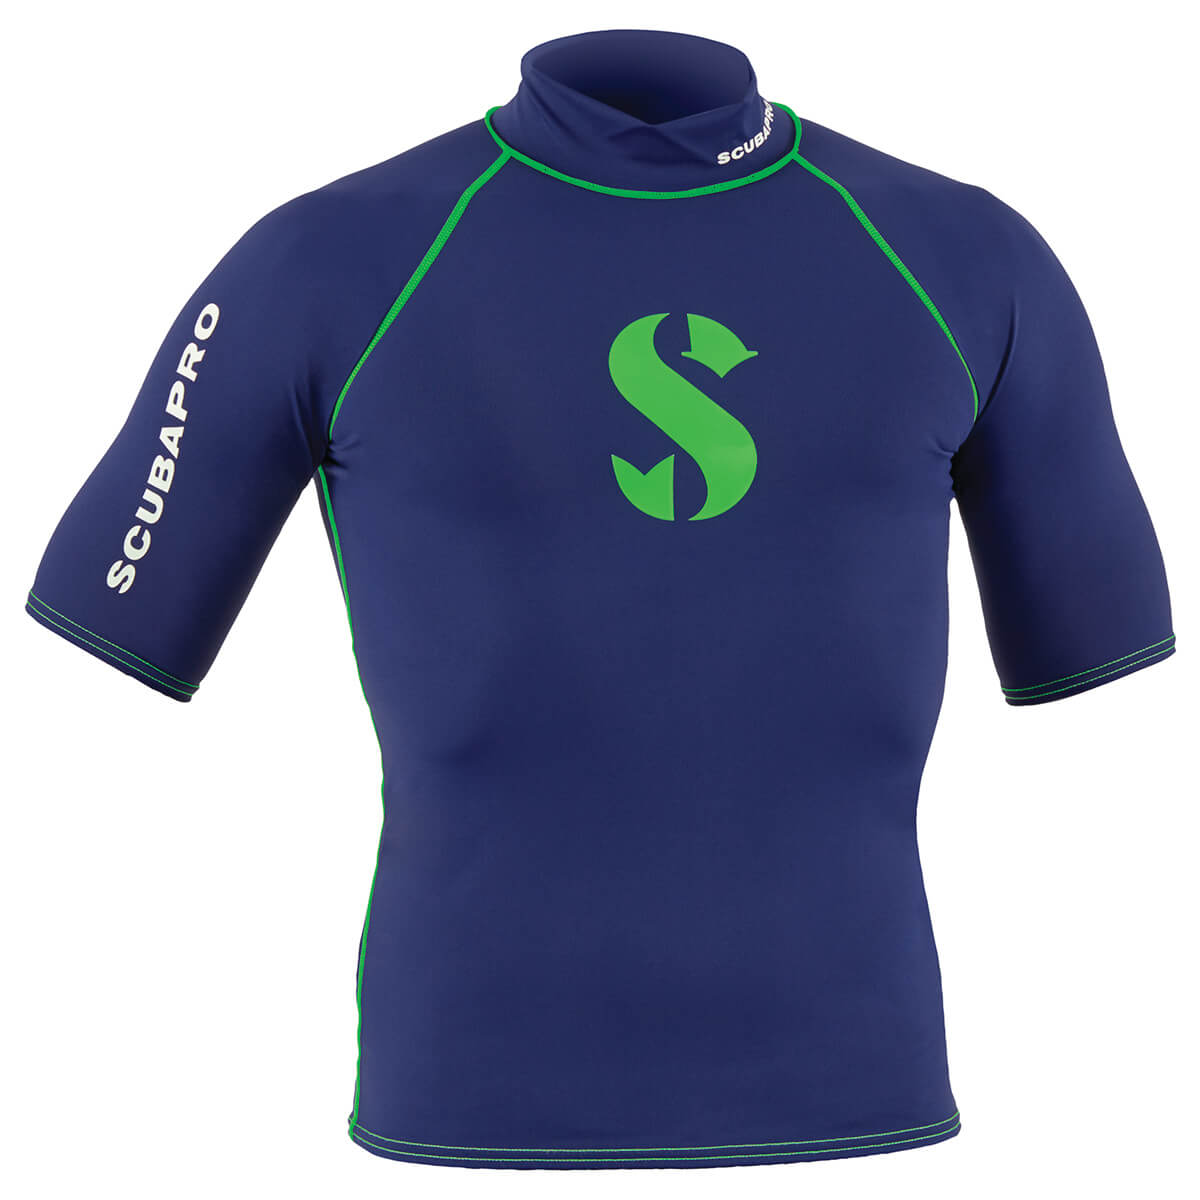 Blue Planet Rashguard Men's Short Sleeve